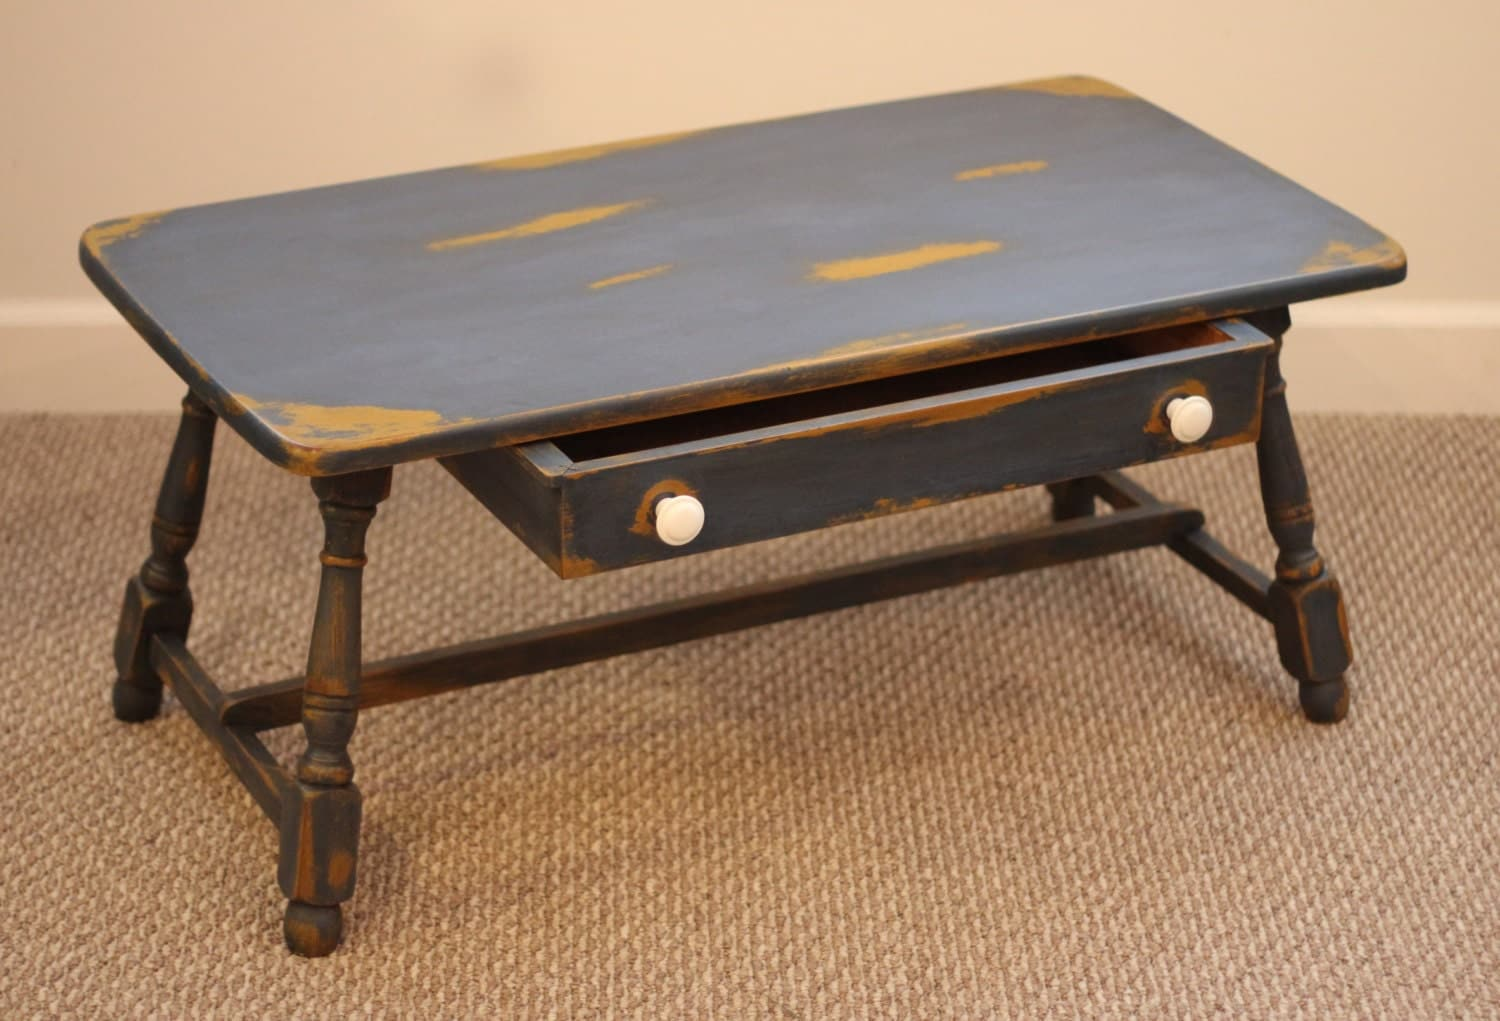 Upcycled Coffee Table With Milk Paint Finish By Mdrnhomesteader